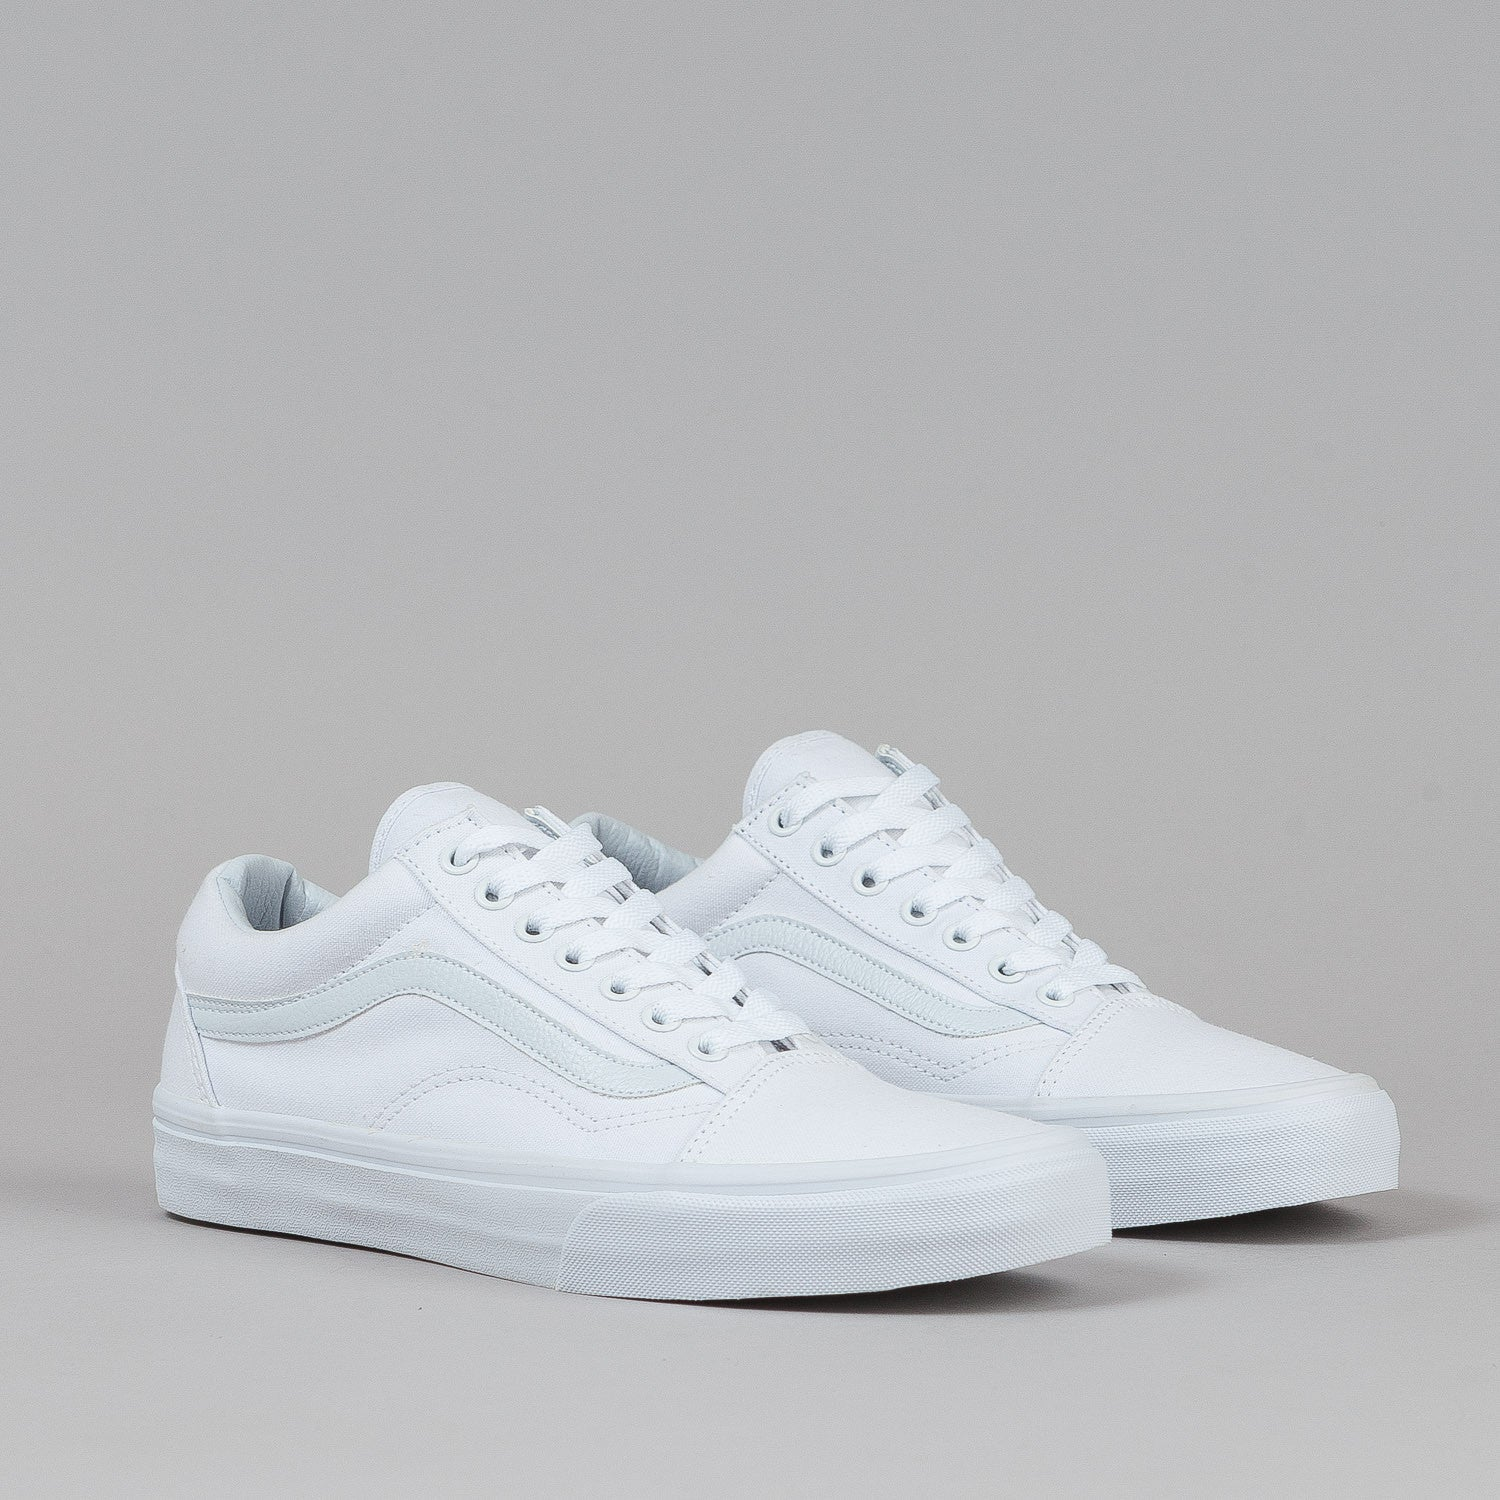 vans old skool shoes true white canvas flatspot. Black Bedroom Furniture Sets. Home Design Ideas